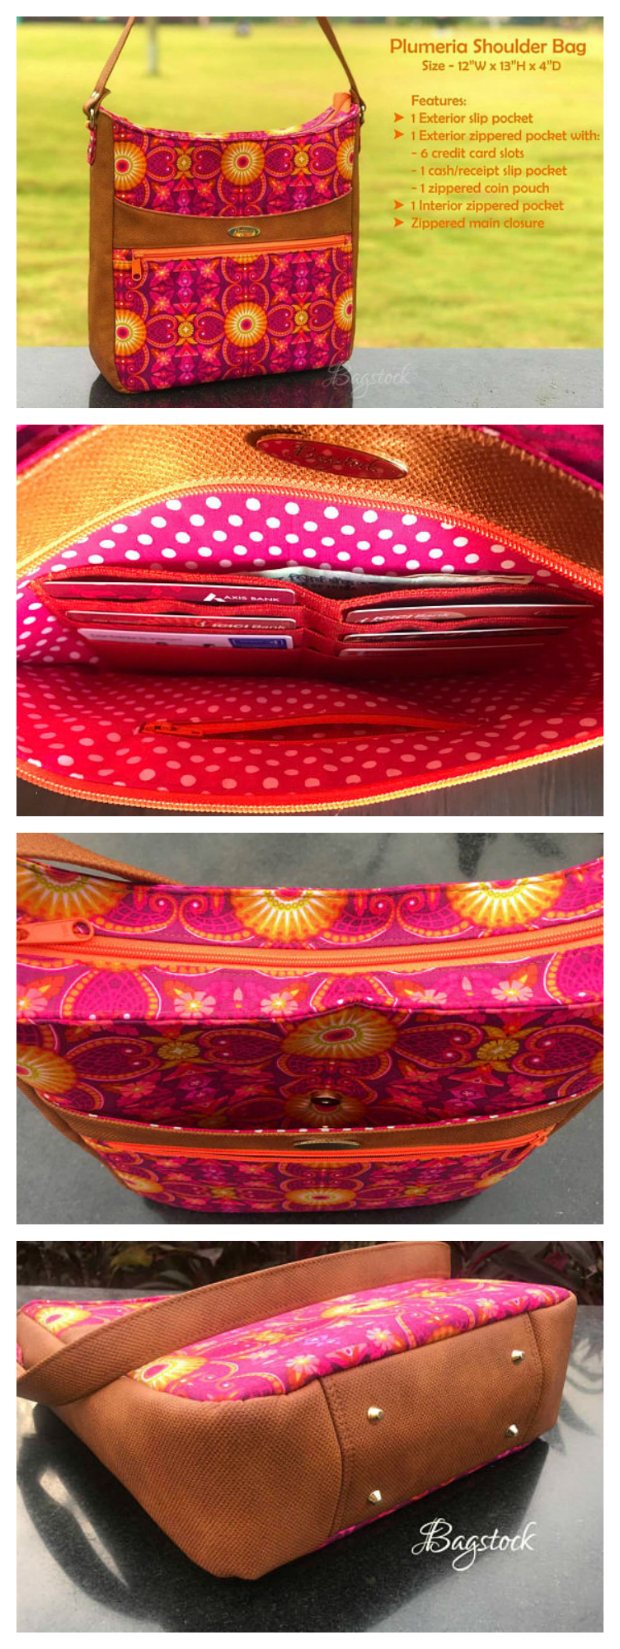 Plumeria is an all-purpose shoulder bag. It's a great bag with the following features: Six card slots One cash/receipt slip pocket One small zipper coin pouch in the exterior zipper pocket One big slip pocket on the exterior One zippered pocket inside A zip top closure to keep the bag's contents secure.